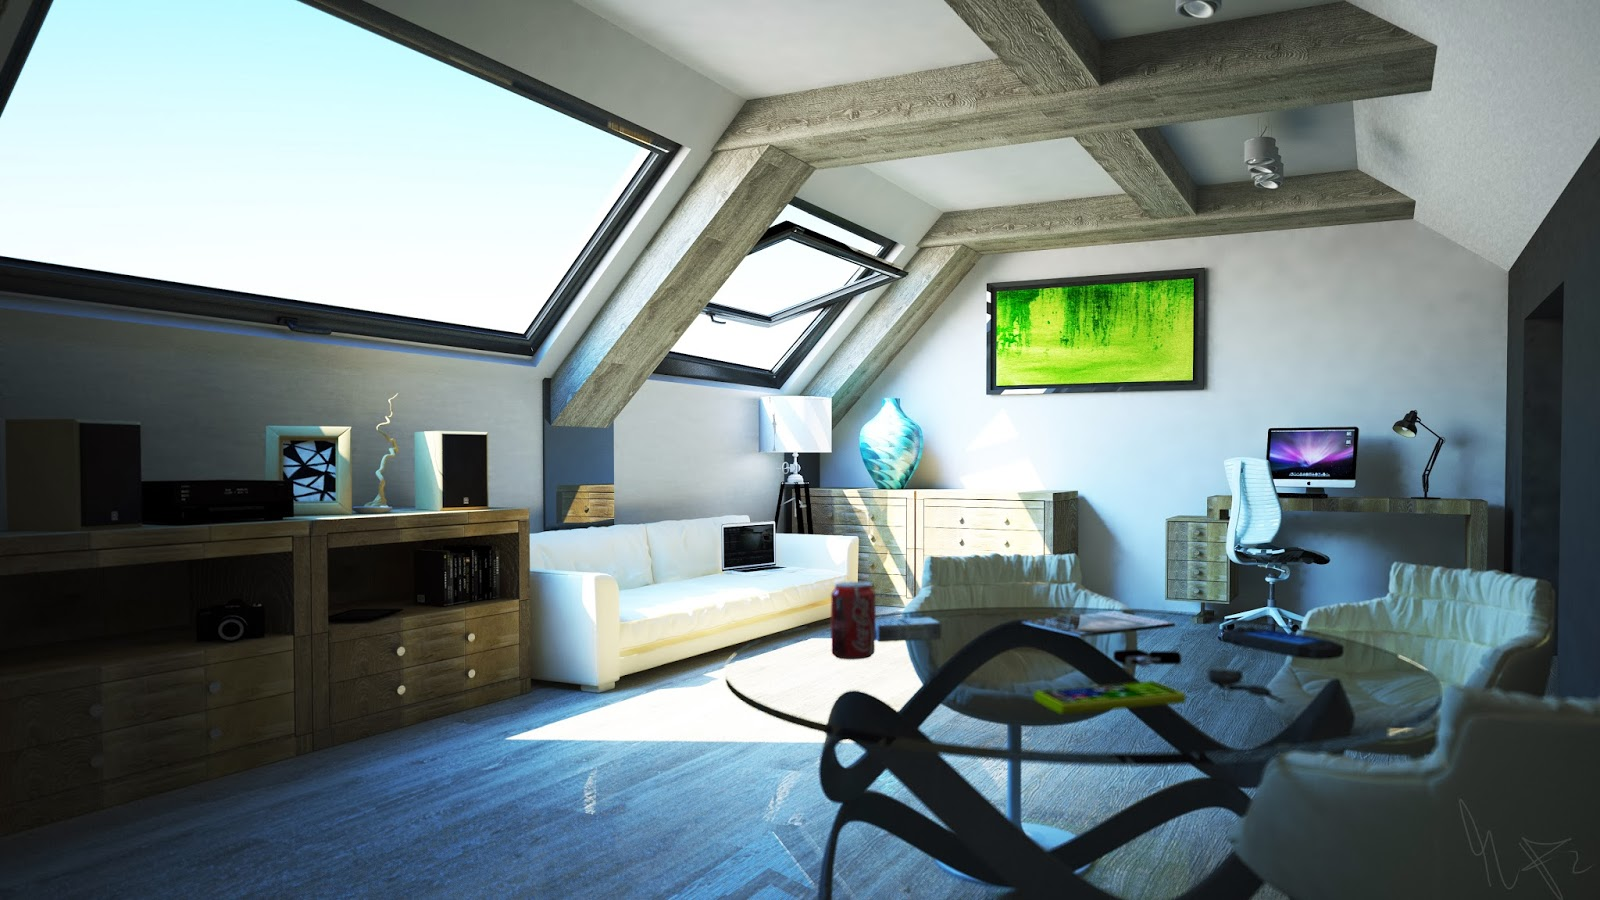 Visual Blender Designing A Room In The Attic With Cinema 4d And Vray